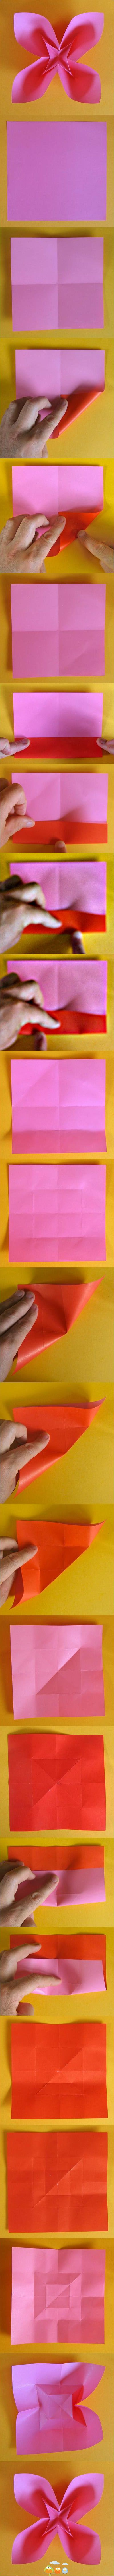 Pin By Kate Charbonneau On Origami Pinterest Decorating Origami